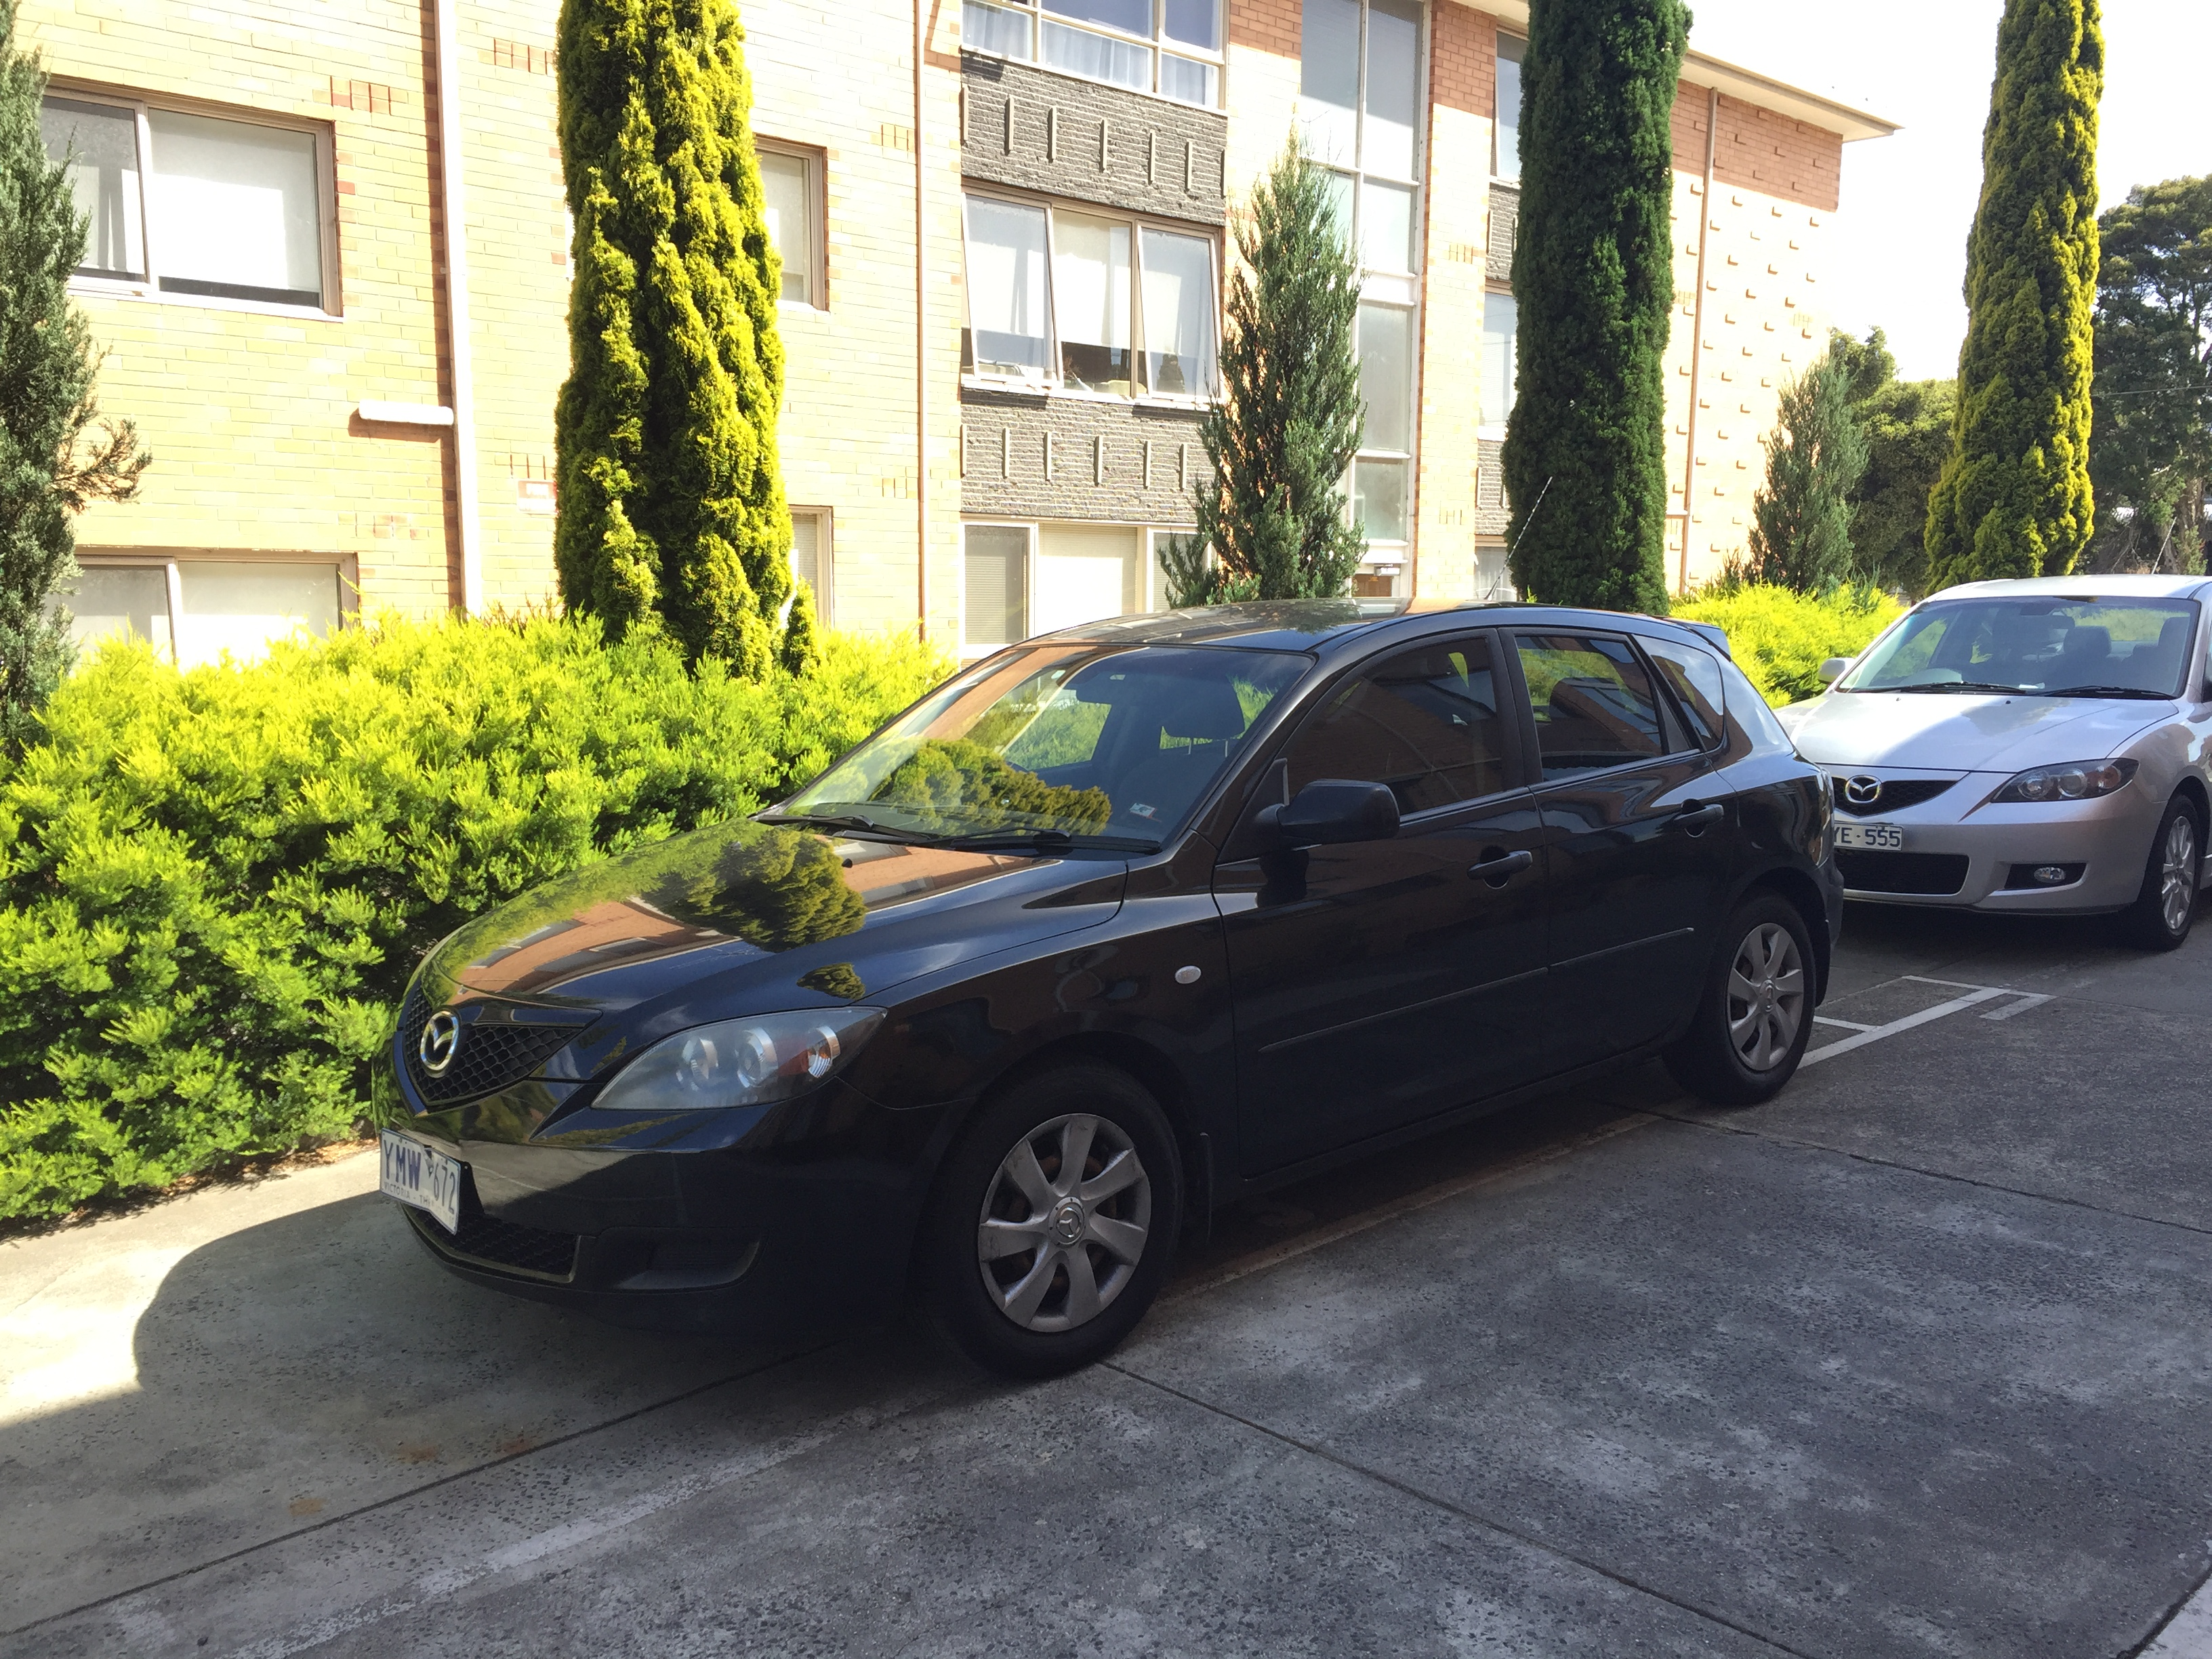 Picture of Liisa's 2008 Mazda 3 Neo hatchback